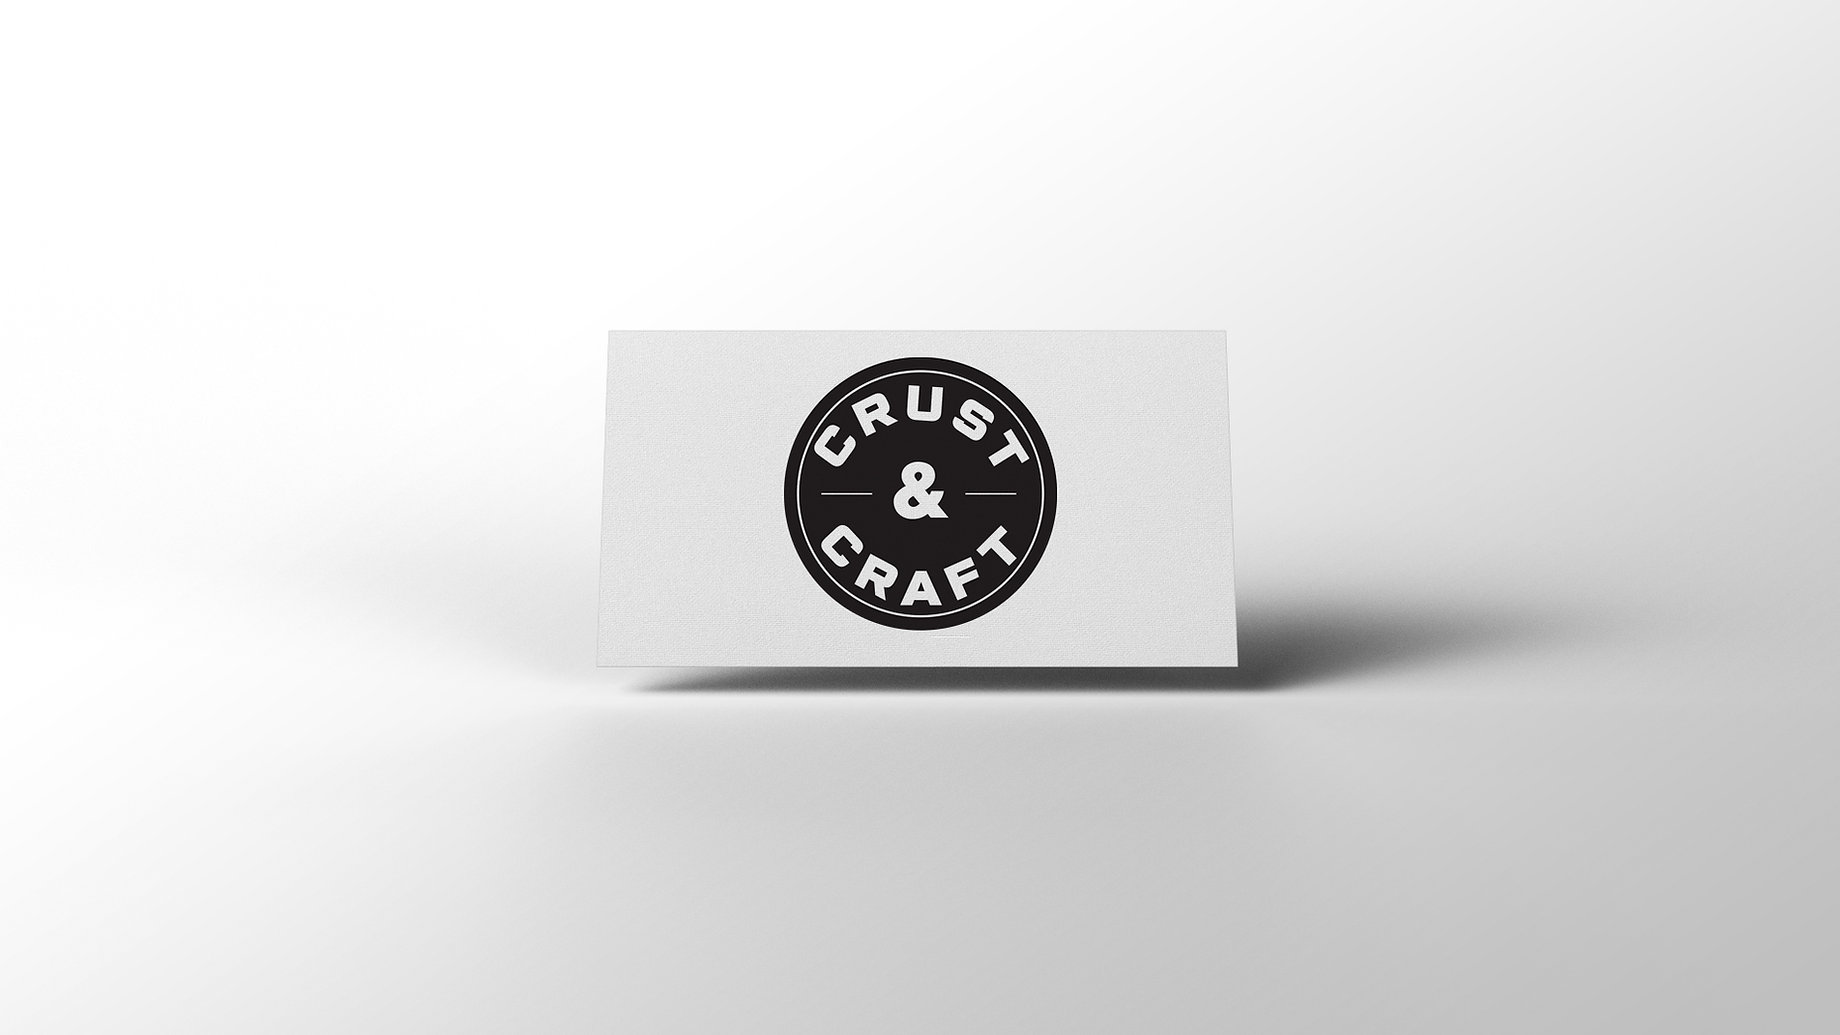 Crust & Craft Gift Card.jpg